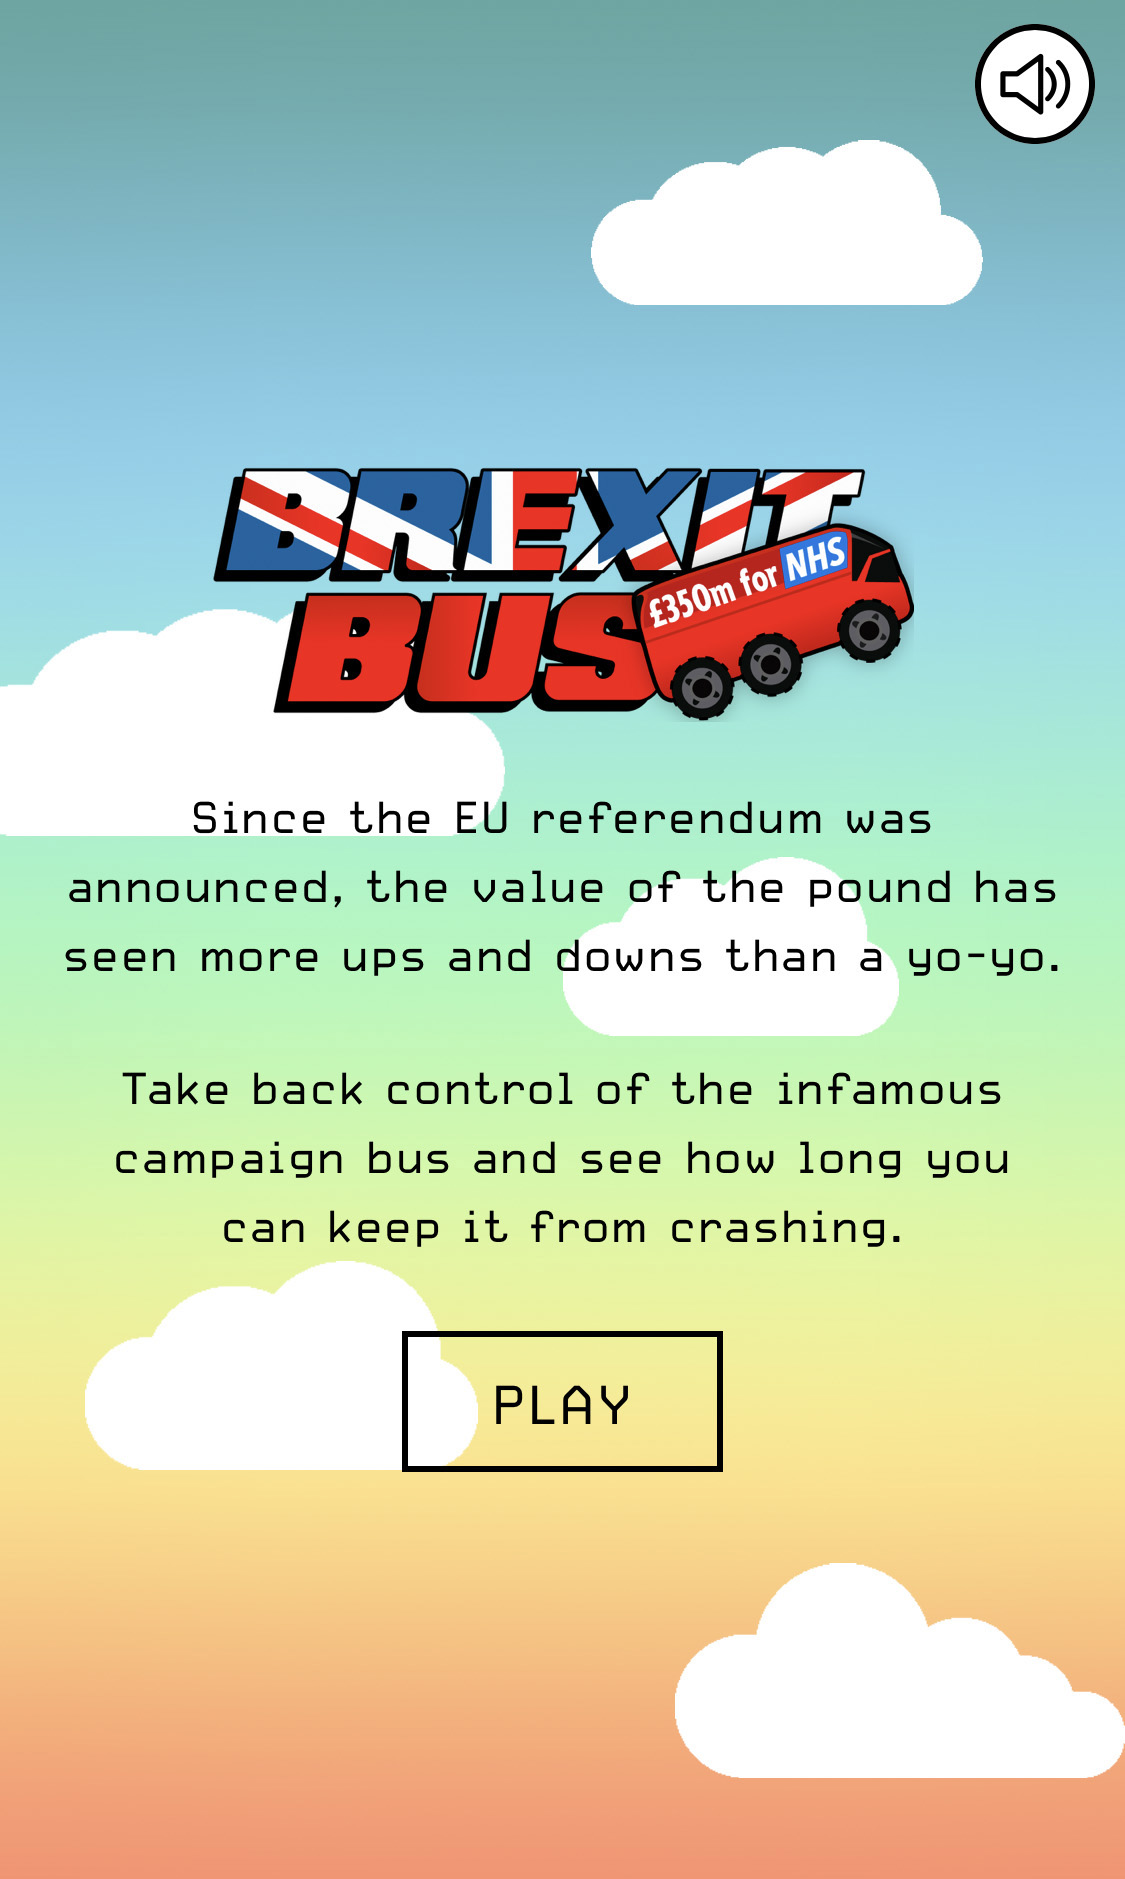 Ride the Brexit Bus and see how long you can keep it going from crashing